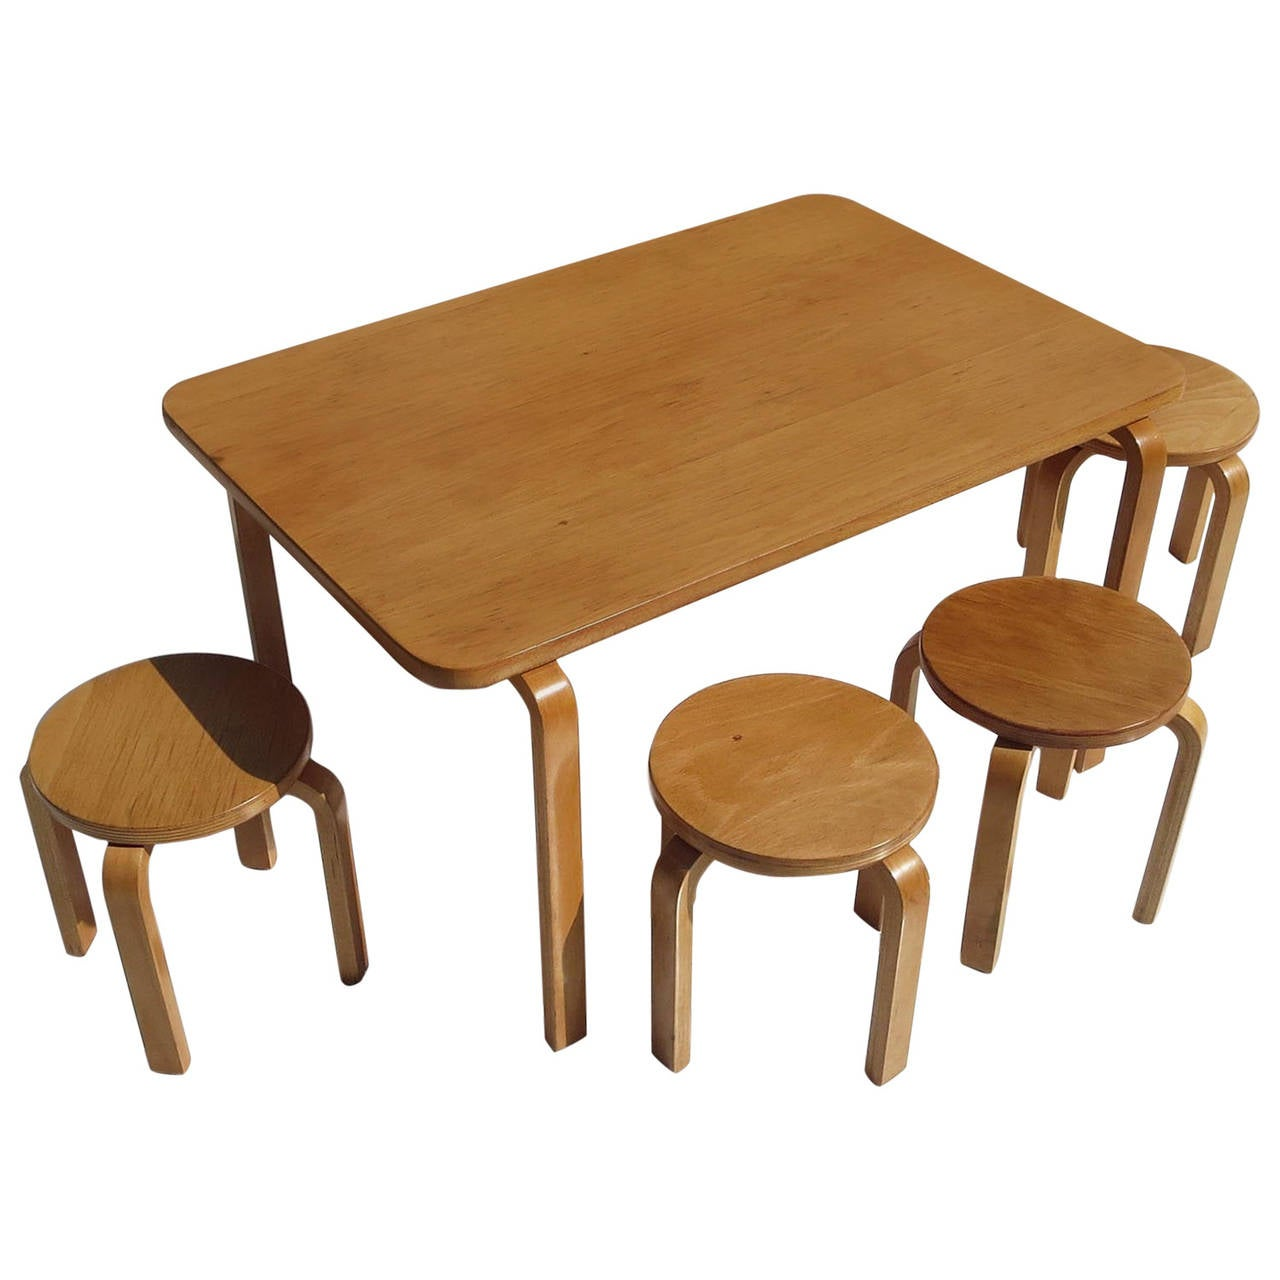 this children 39 s scaled dining set by alvar aalto for artek is no